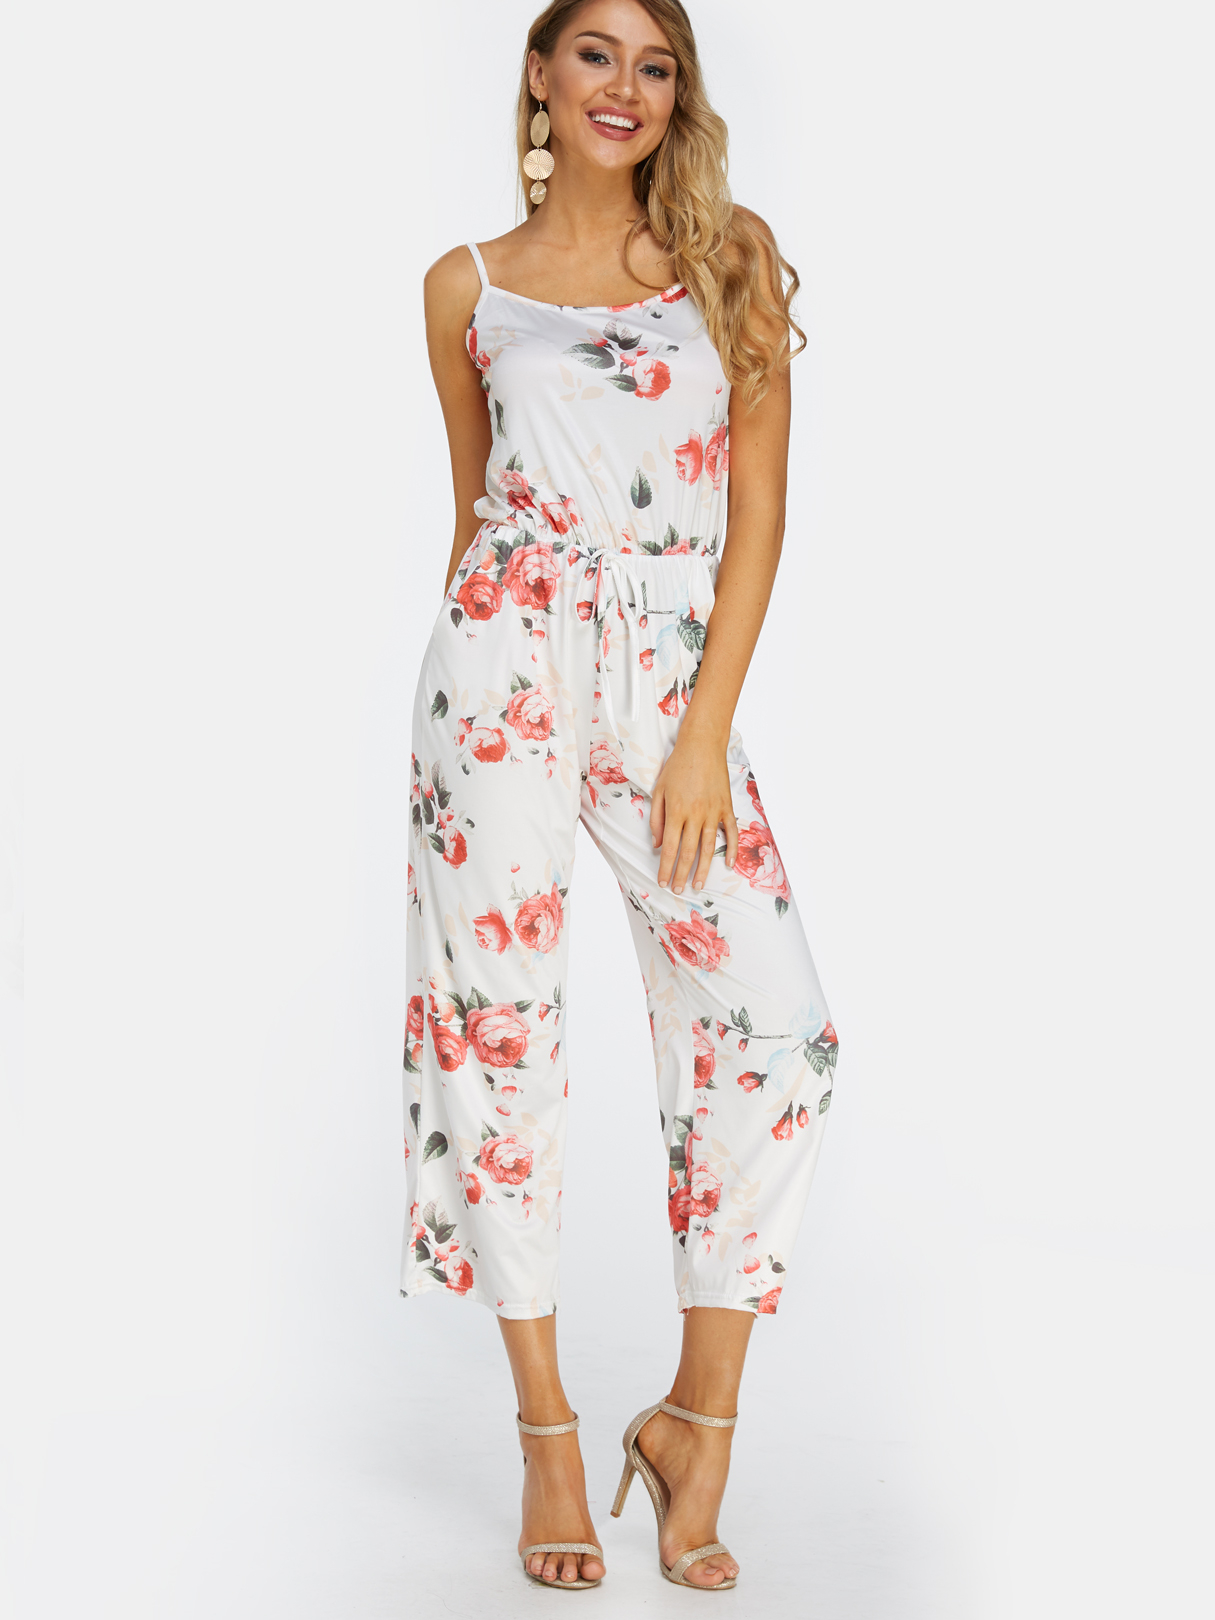 White Backless Design Radndom Floral Print Drawstring Waist Jumpsuit